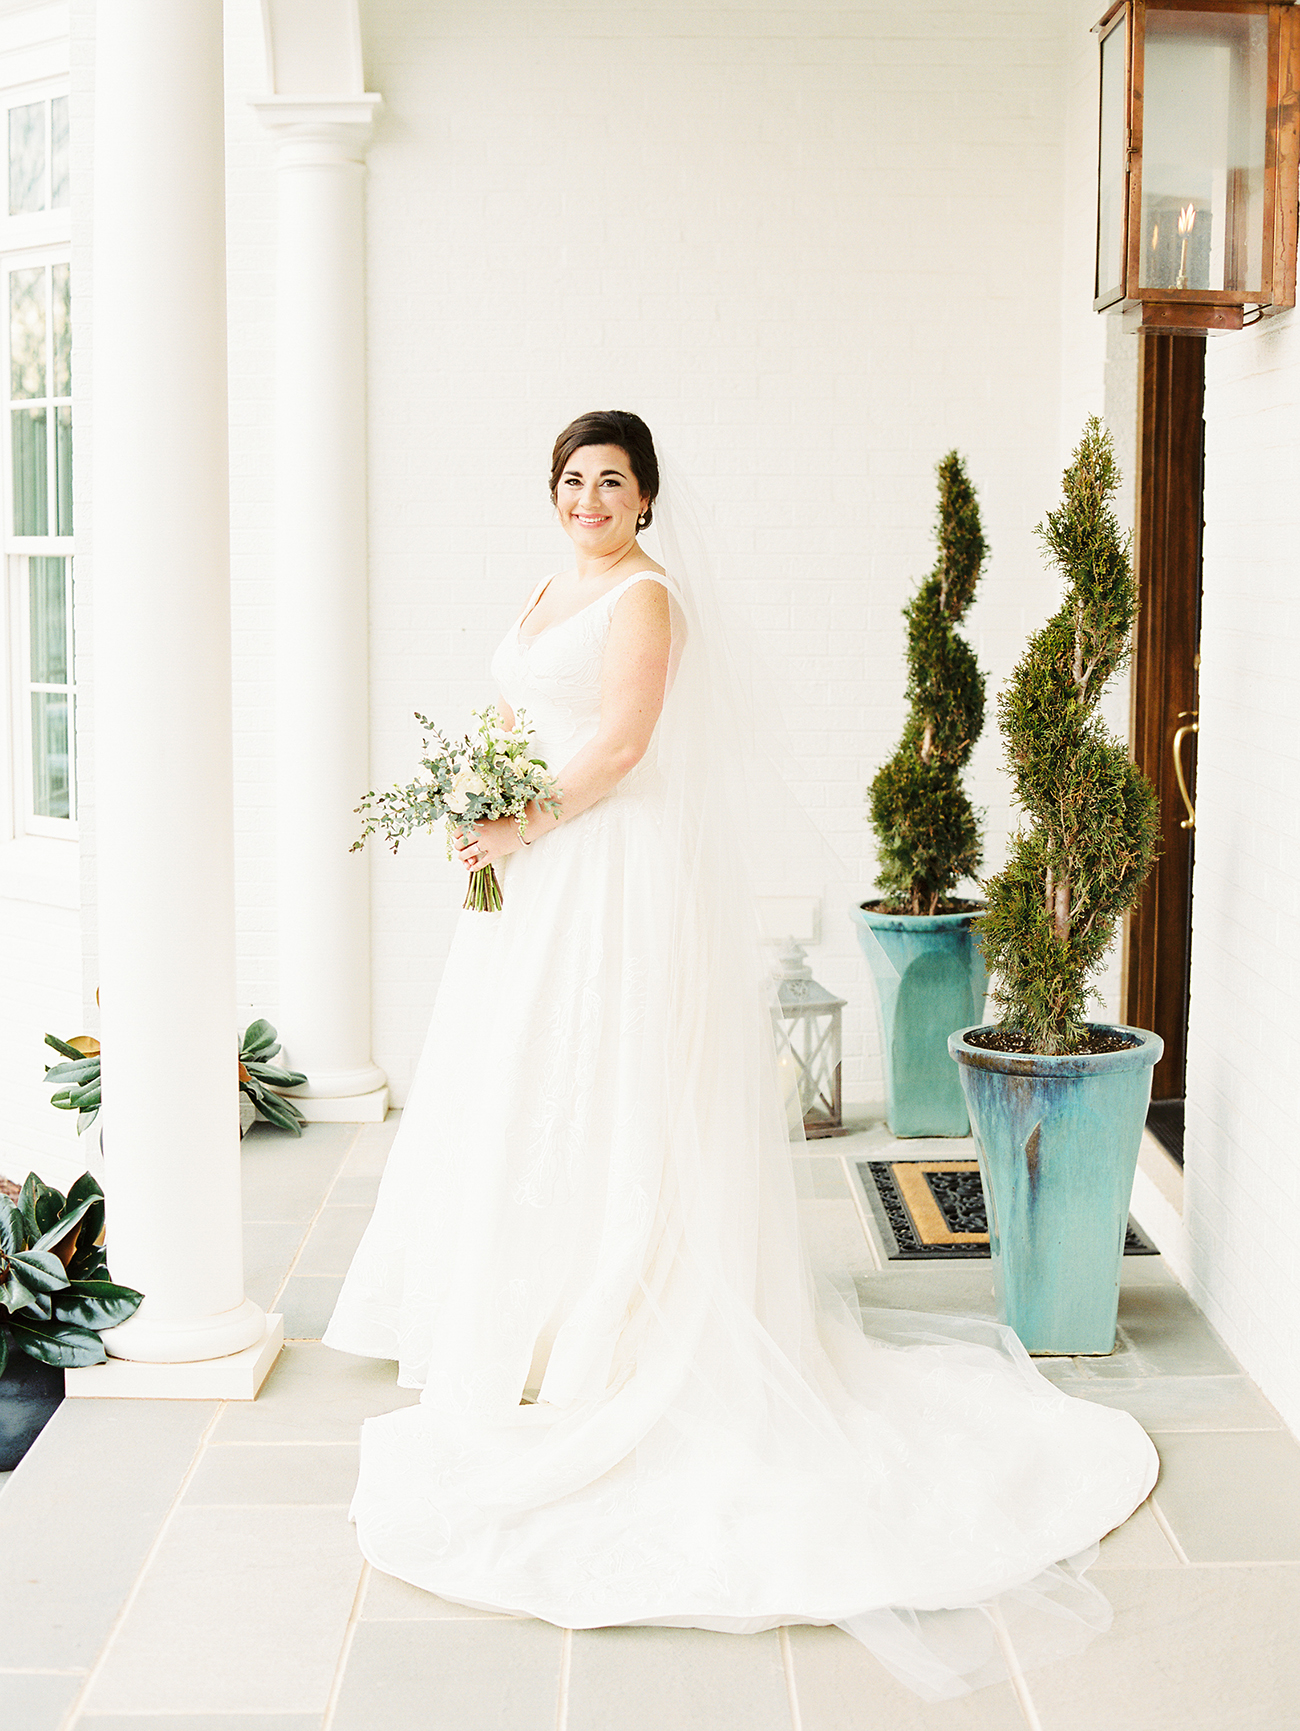 nrp-nancy-ashleydavisbridals-2030